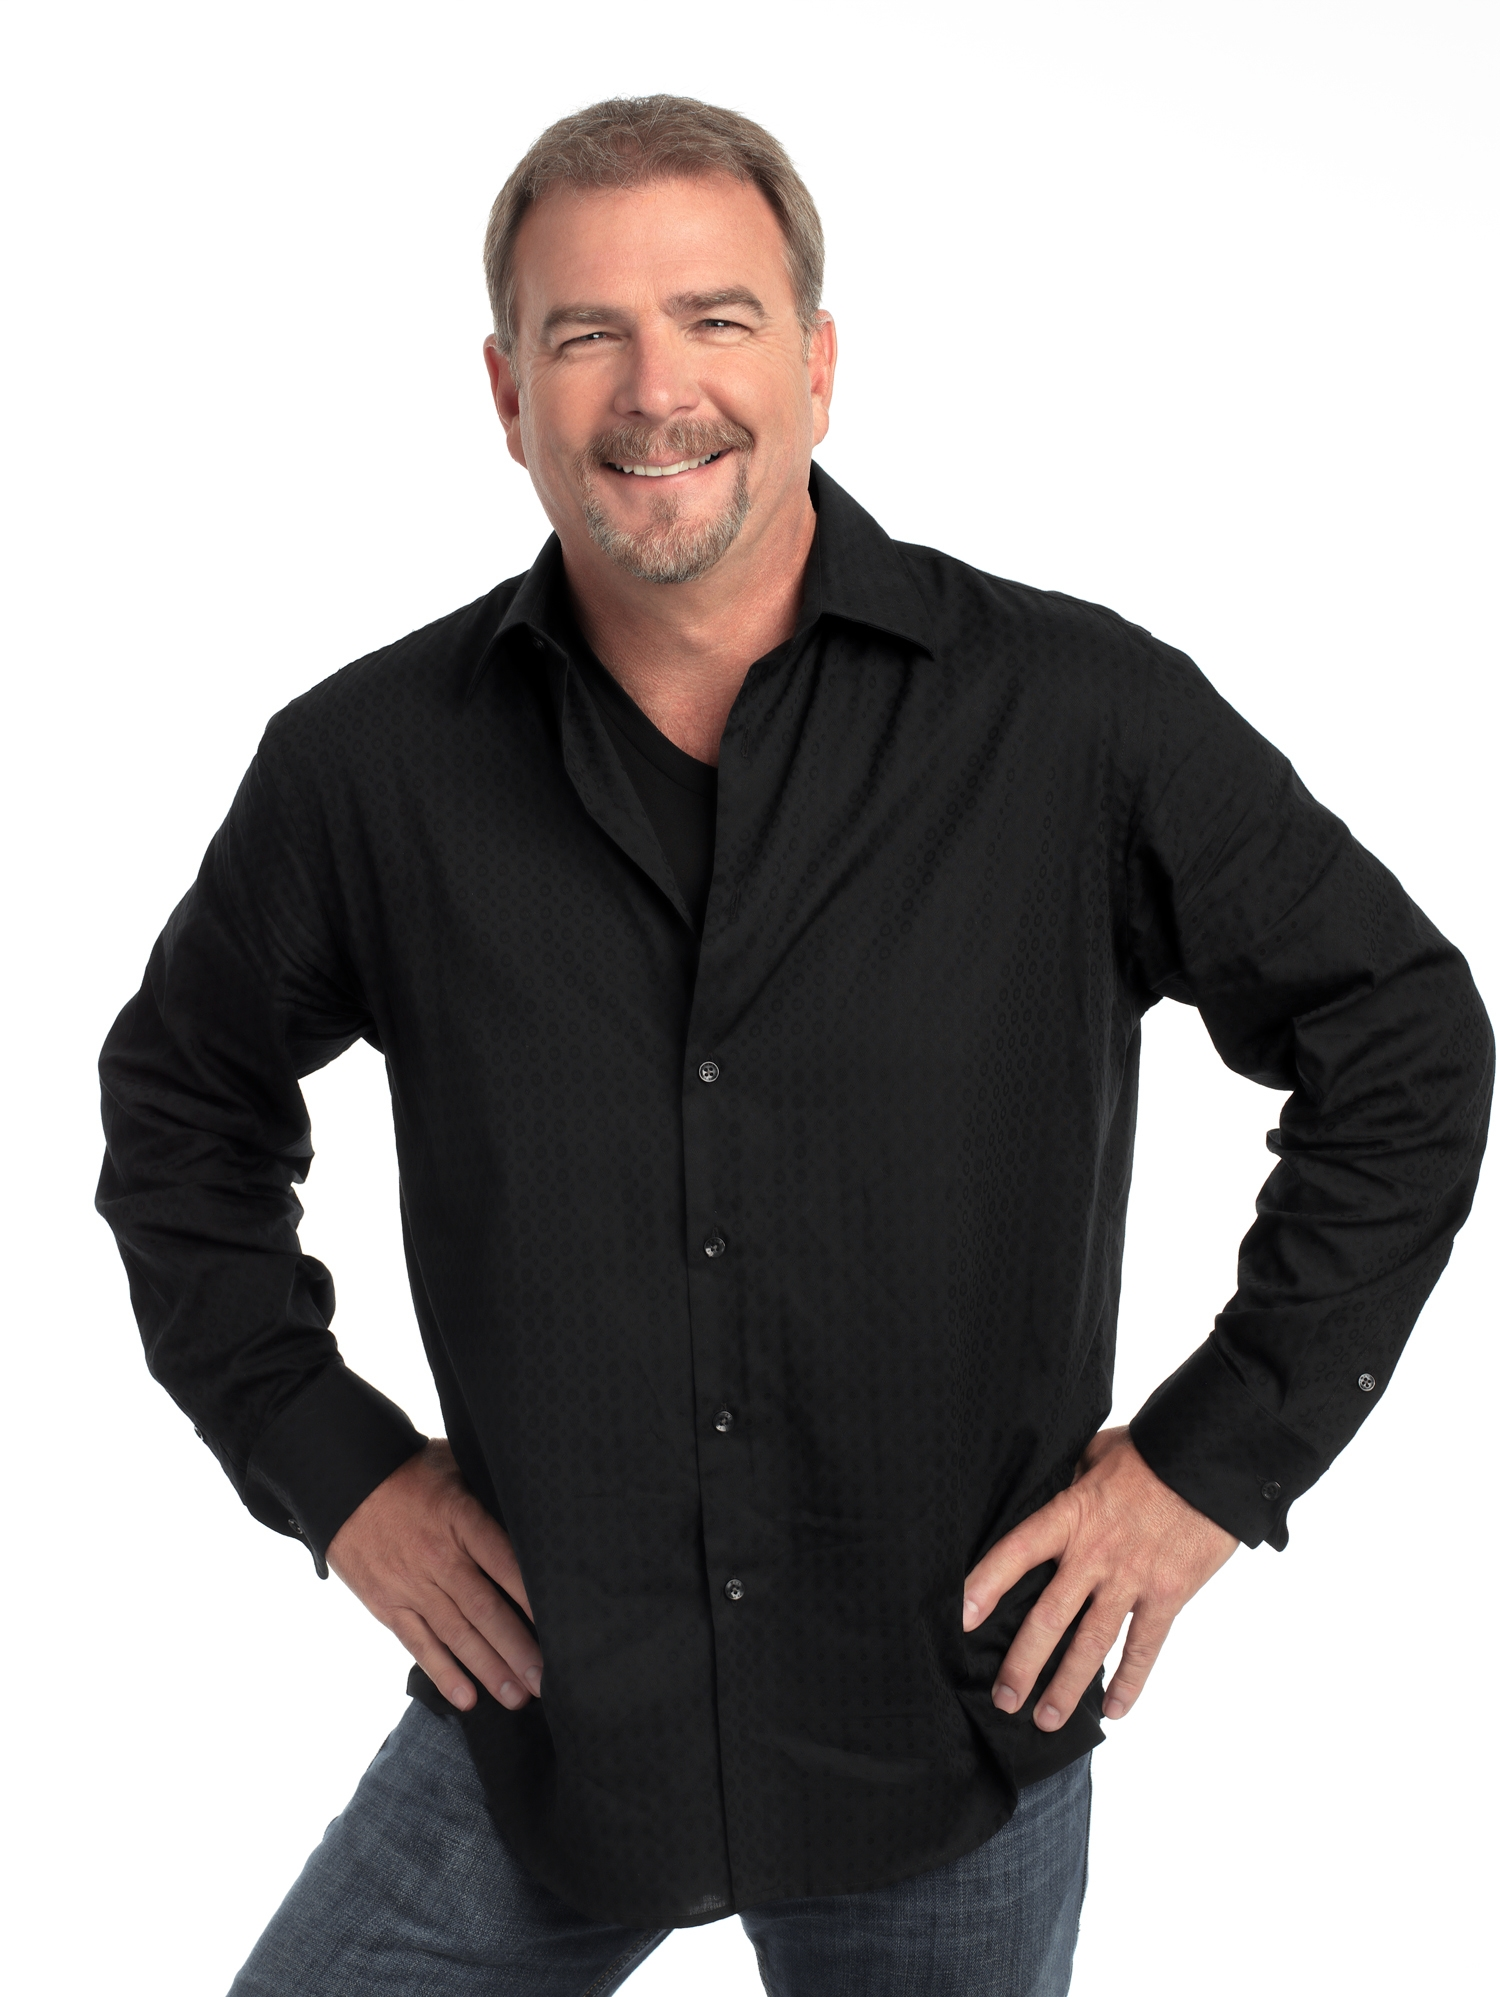 Bill Engvall will perform Nov. 5 at the Riviera Theatre.